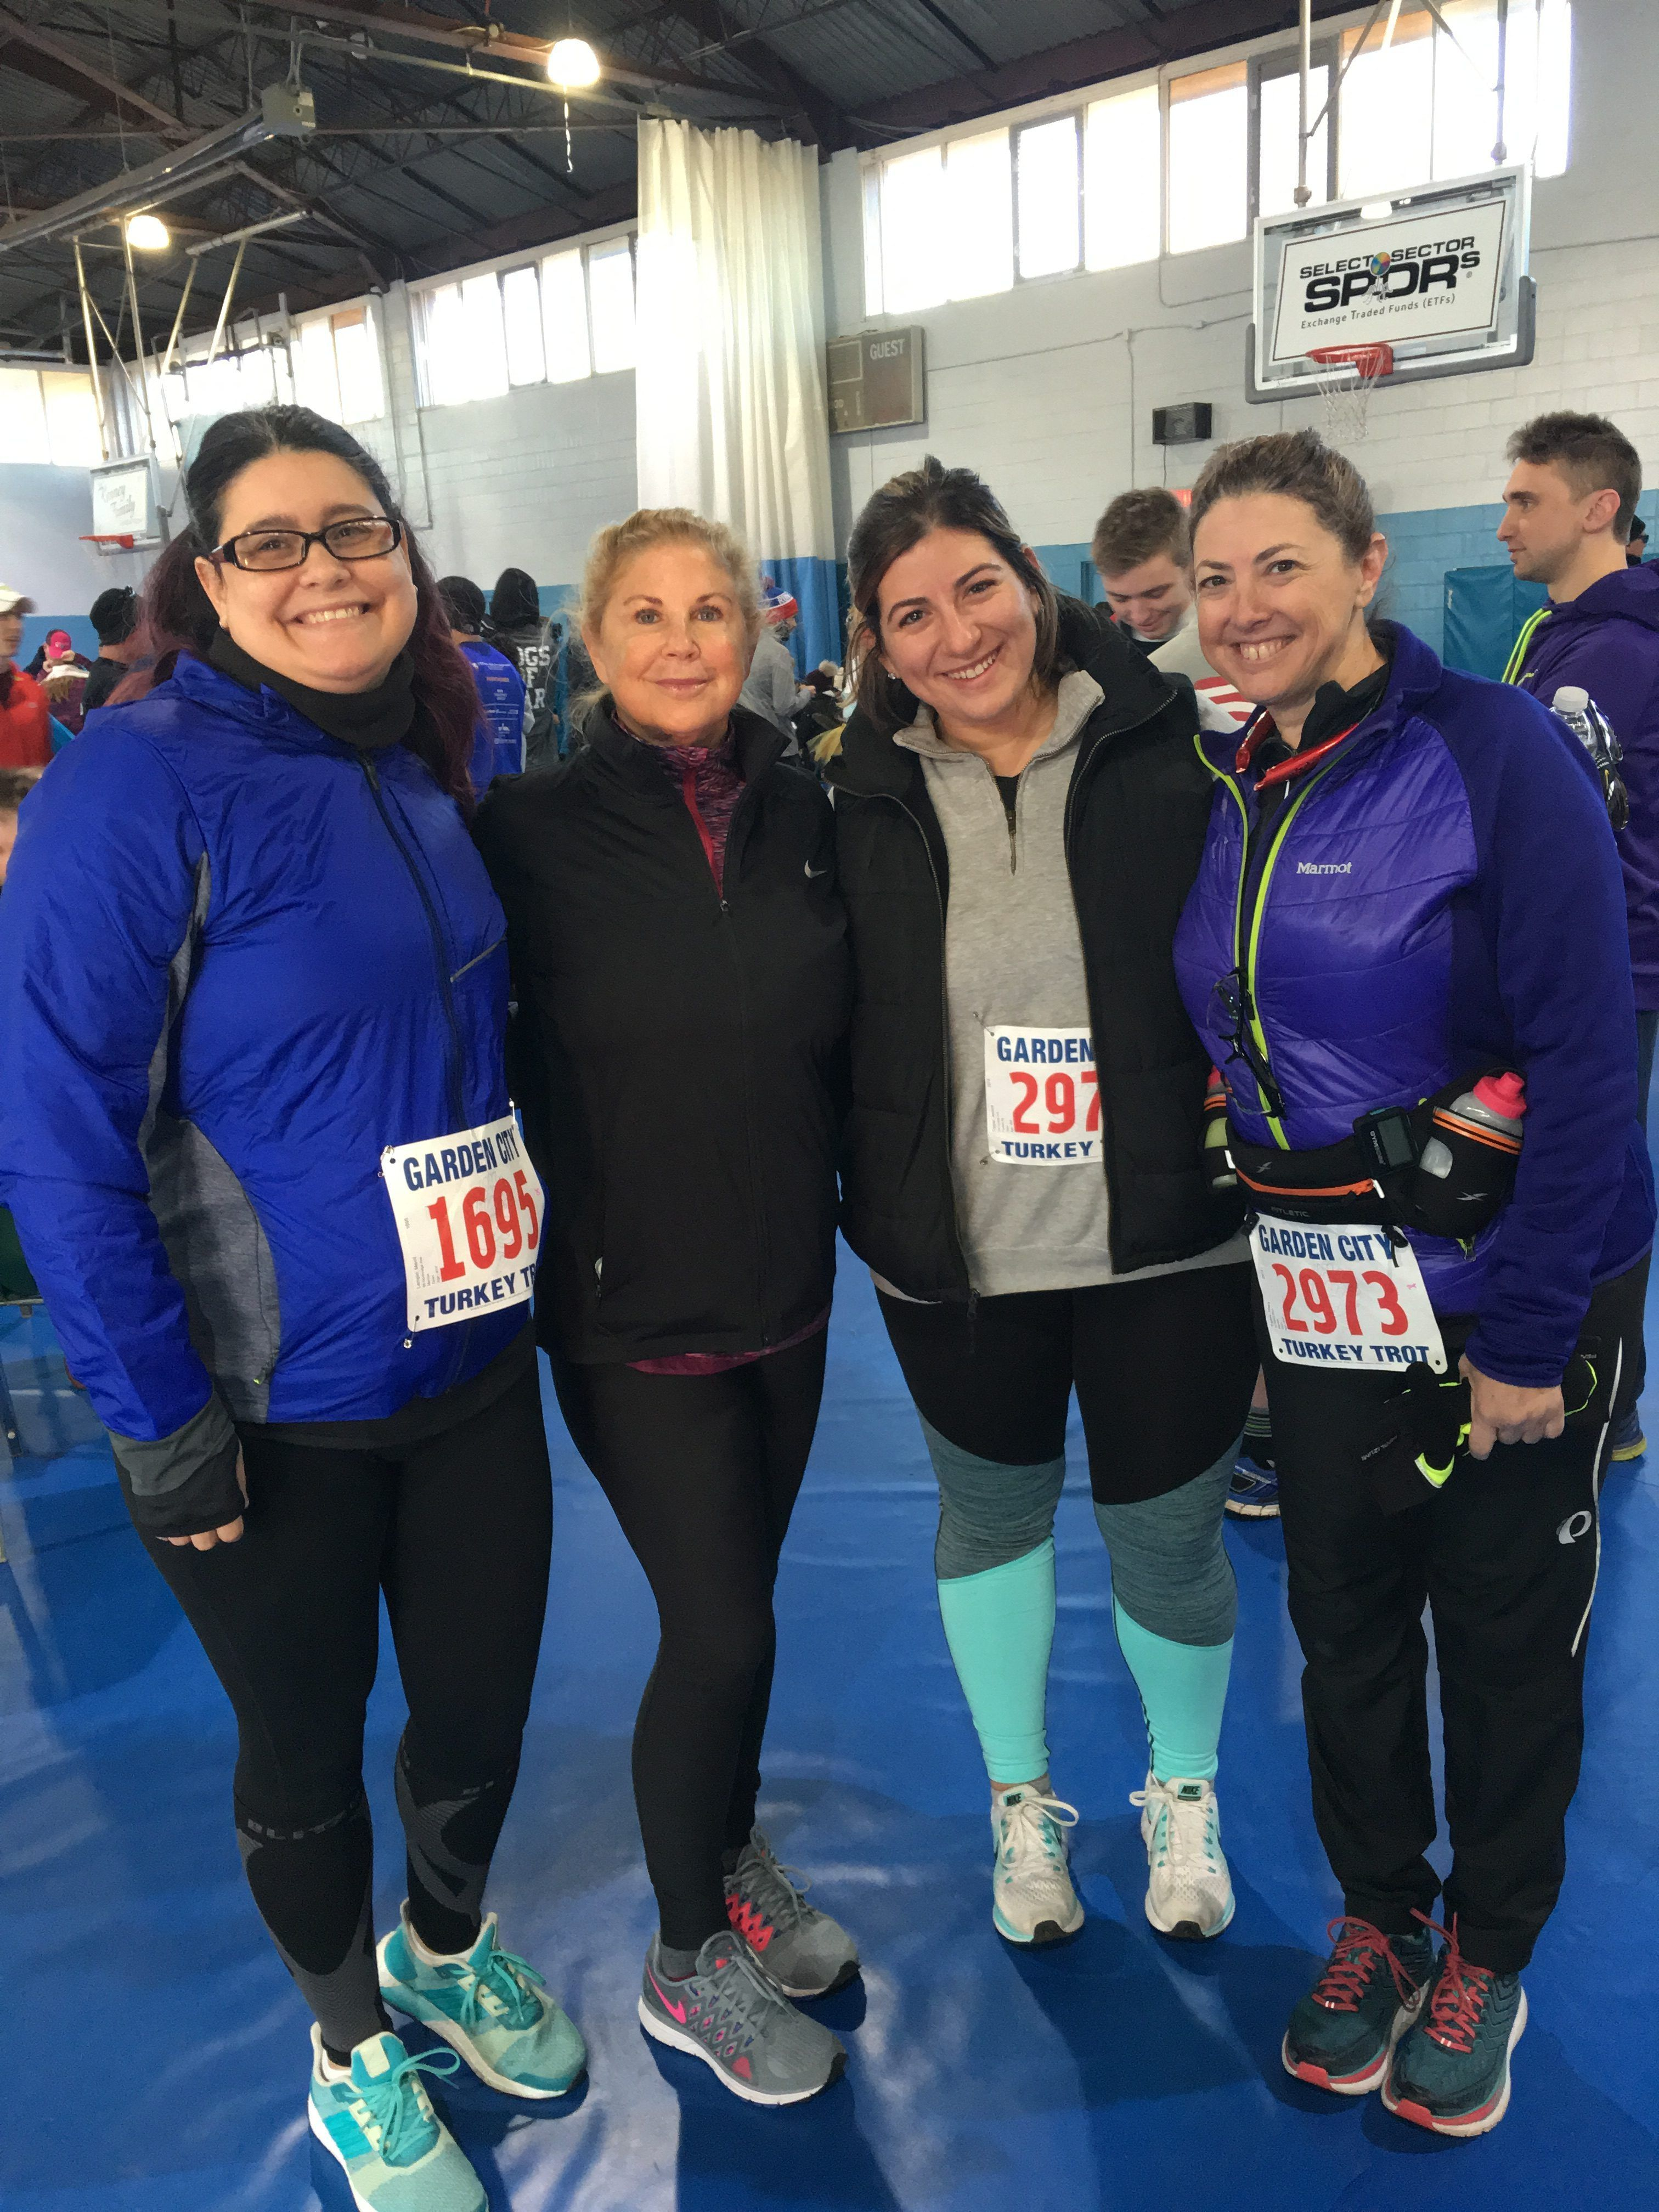 team galloway li makes an appearance at the garden city turkey trot - Garden City Turkey Trot